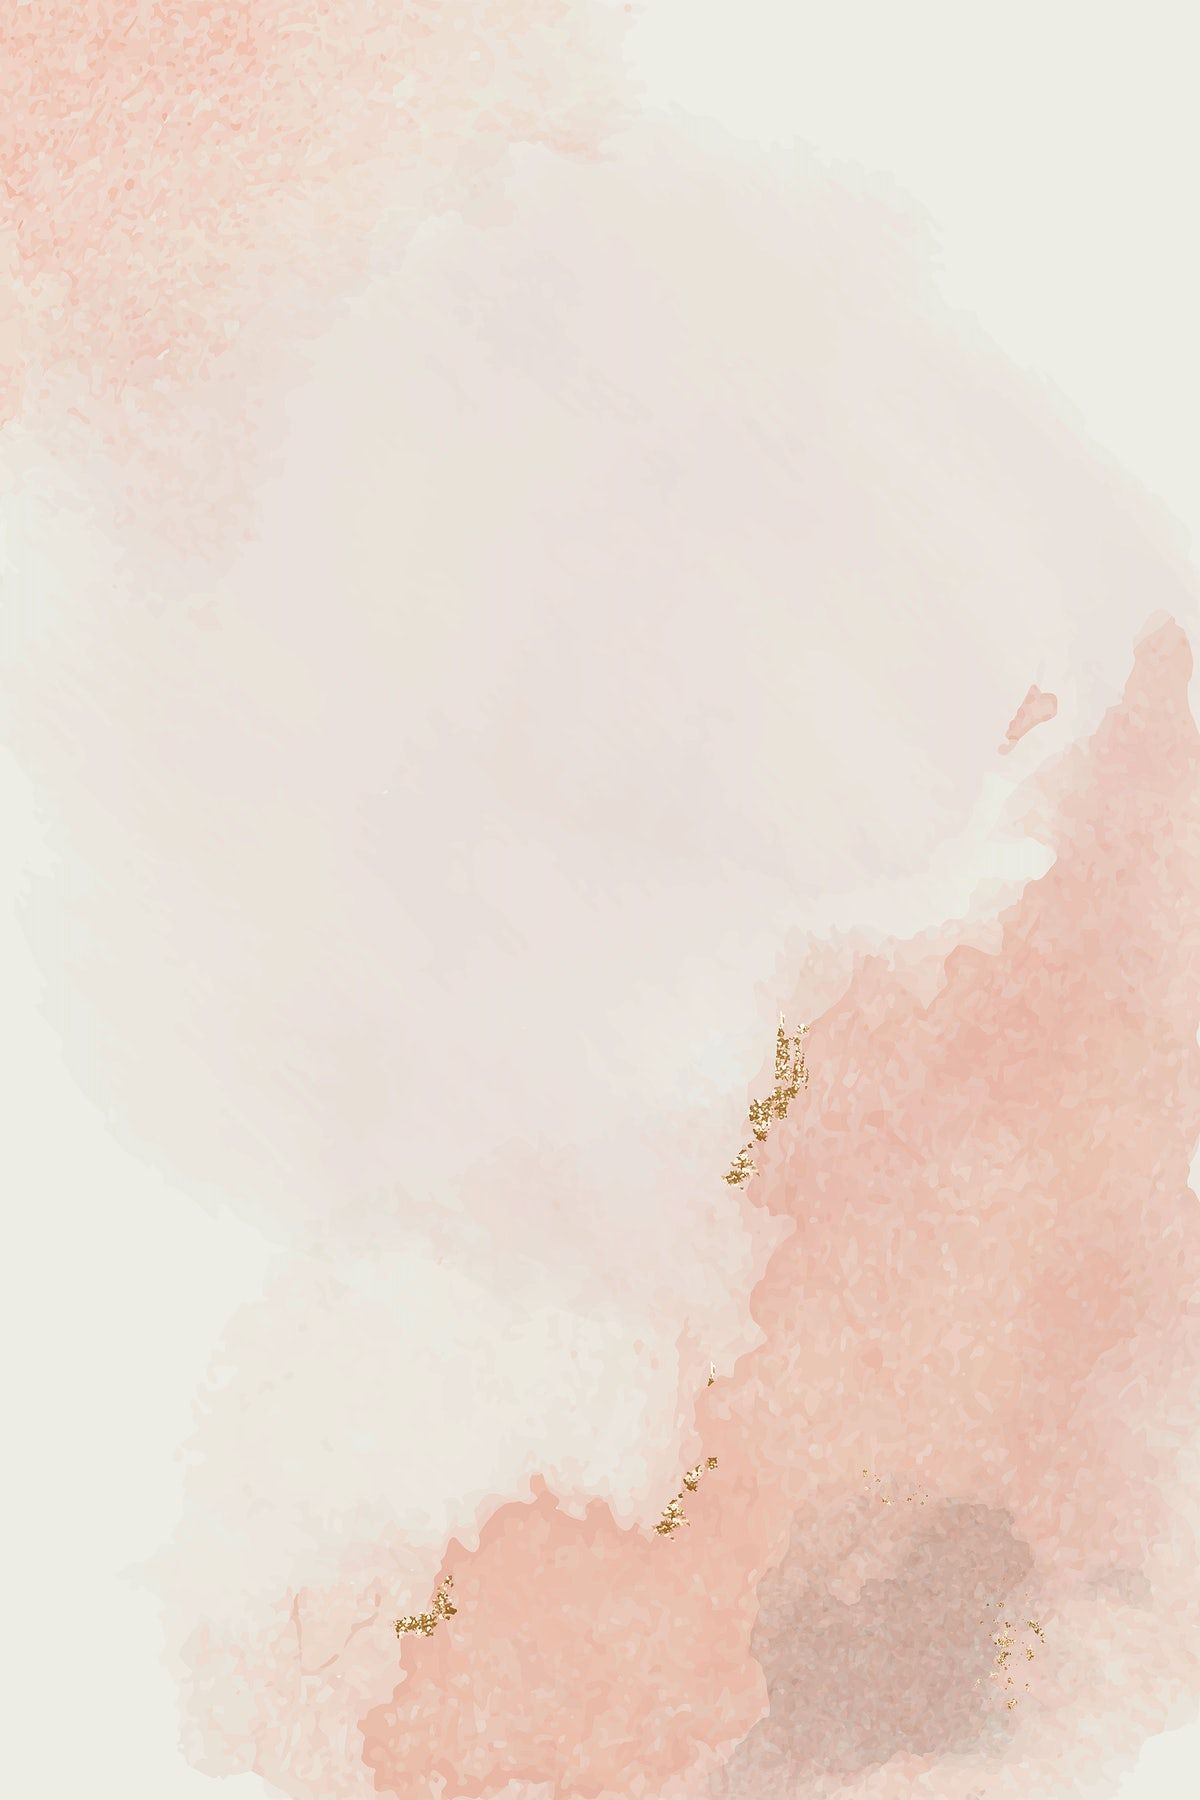 Download premium vector of Pink smudge background design vector by marinemynt about pink watercolor, blush, watercolor, Blush wallpaper, and backgrounds 1201227